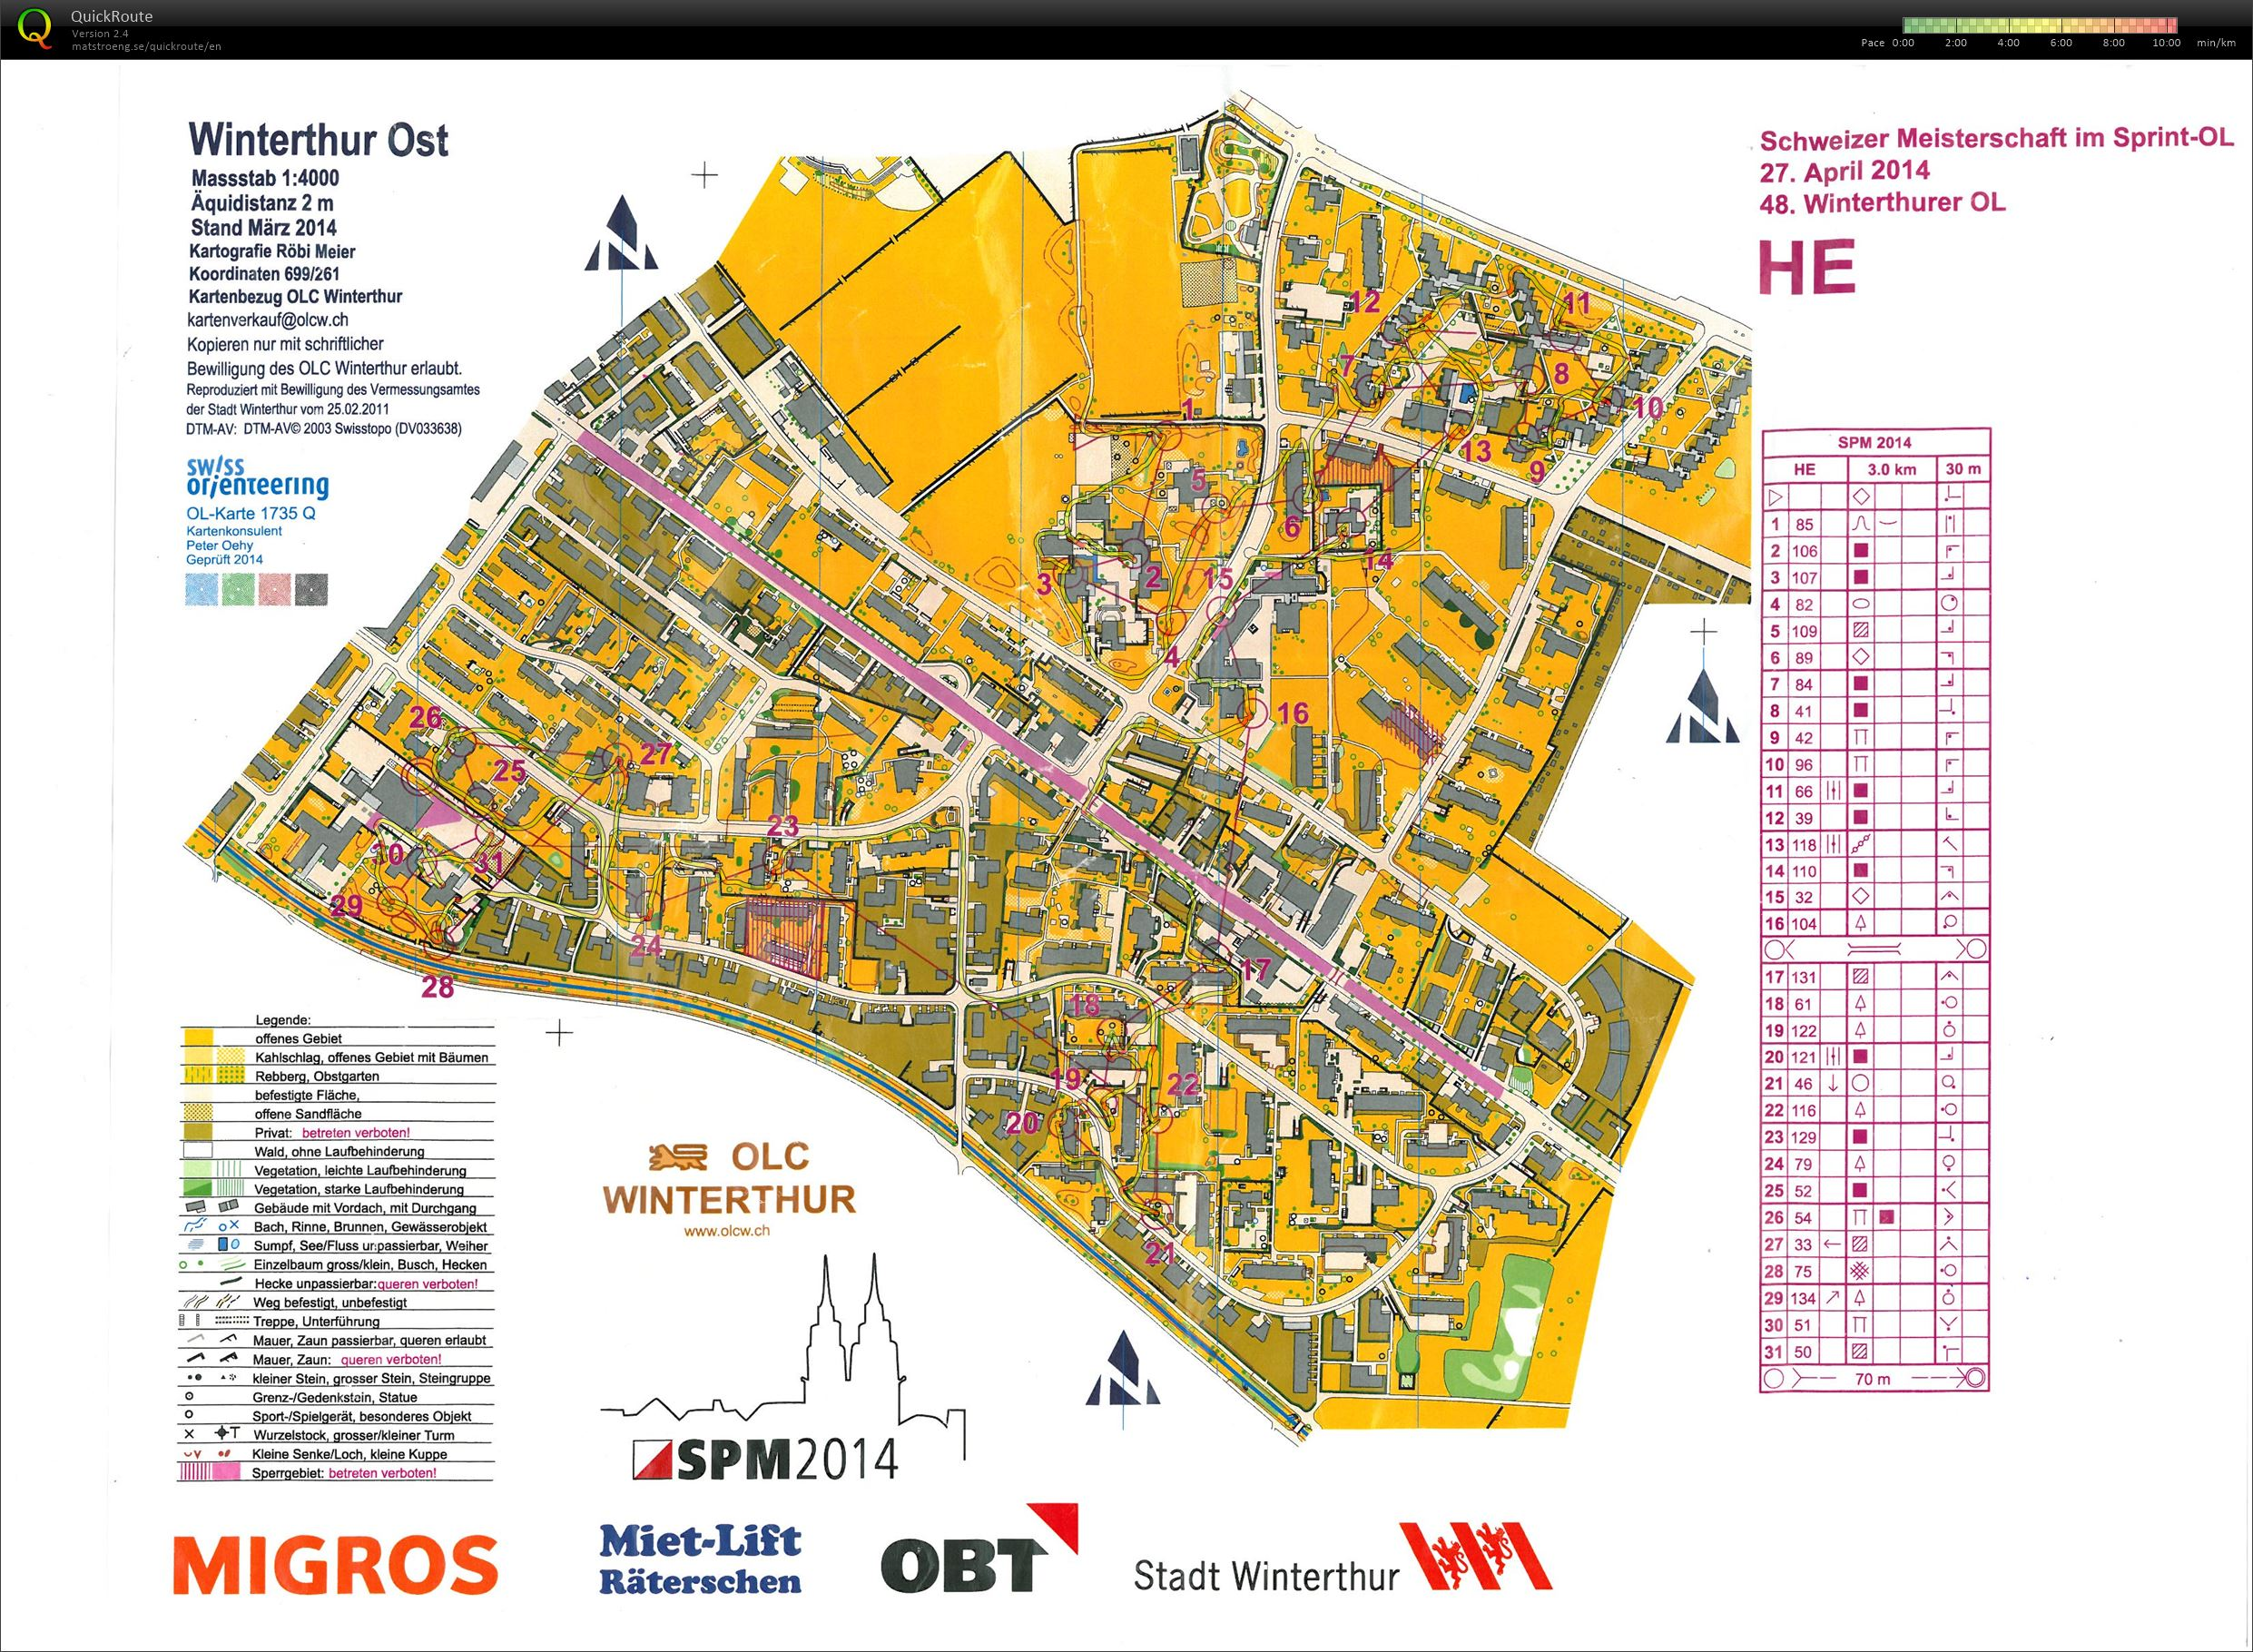 Swiss sprint champs (WRE) (27/04/2014)